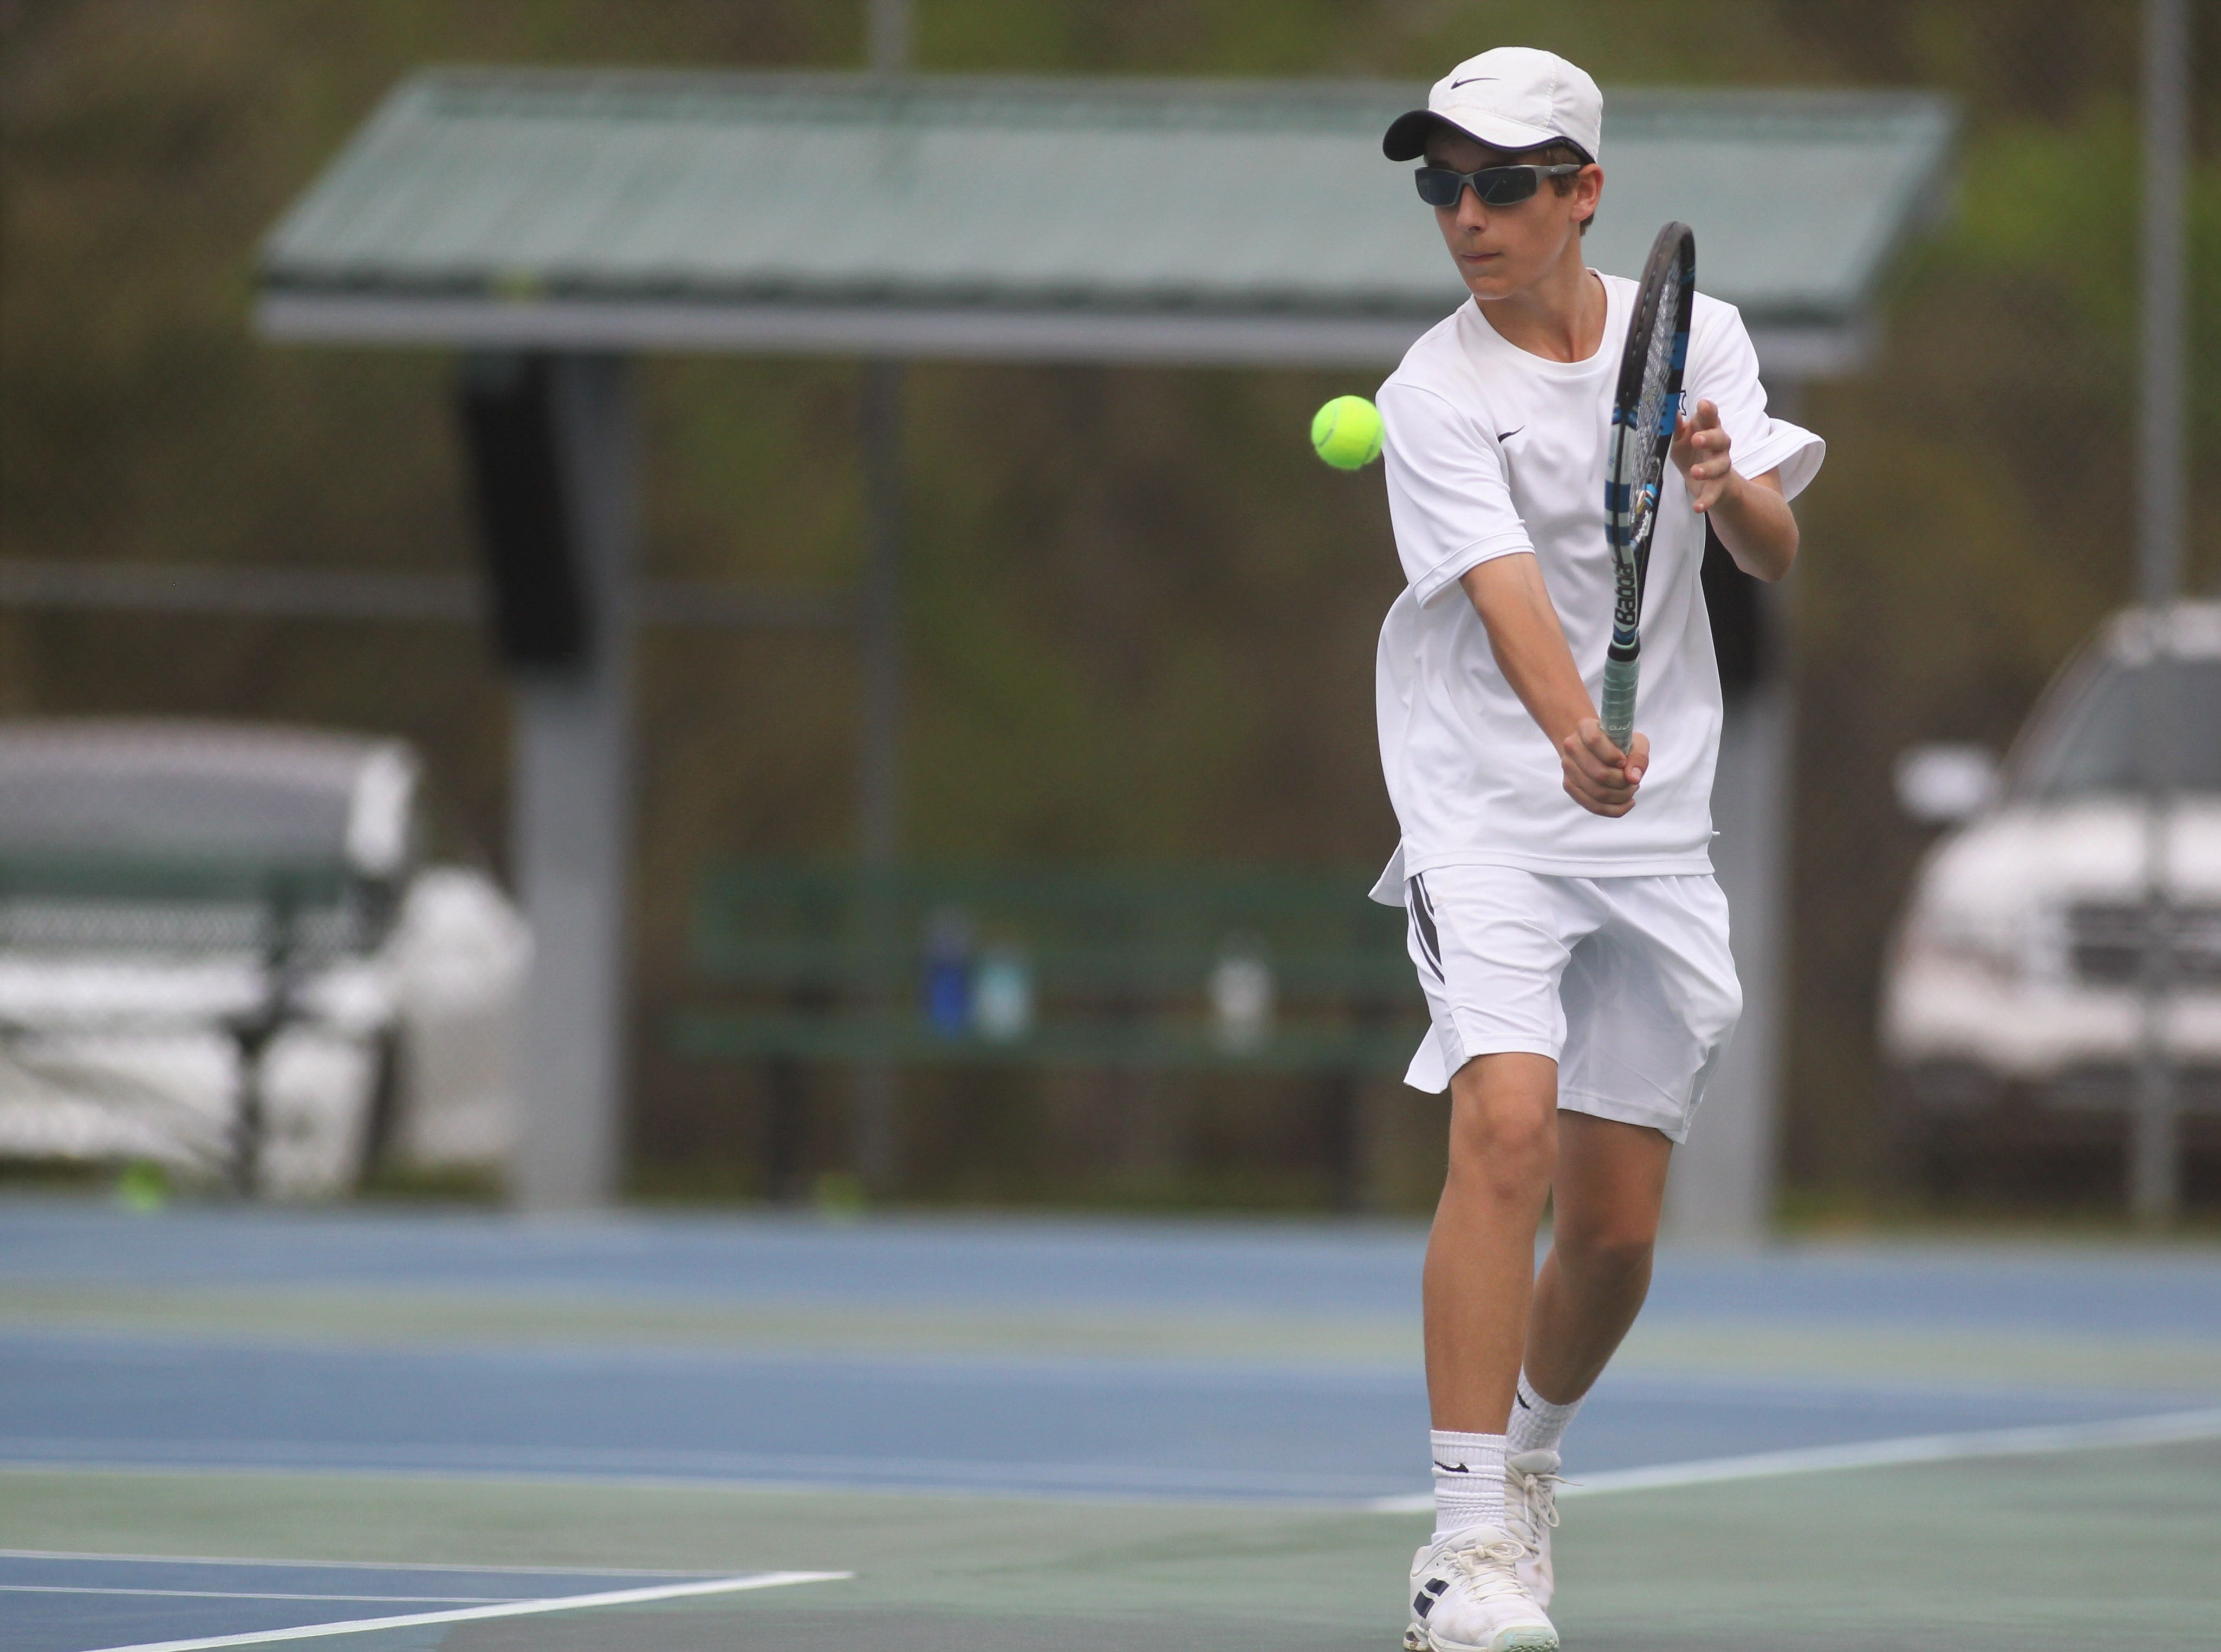 Maclay's Michael Sweeney plays during the high school boys and girls city tennis tournament at Tom Brown Park on Thursday, March 14, 2019.